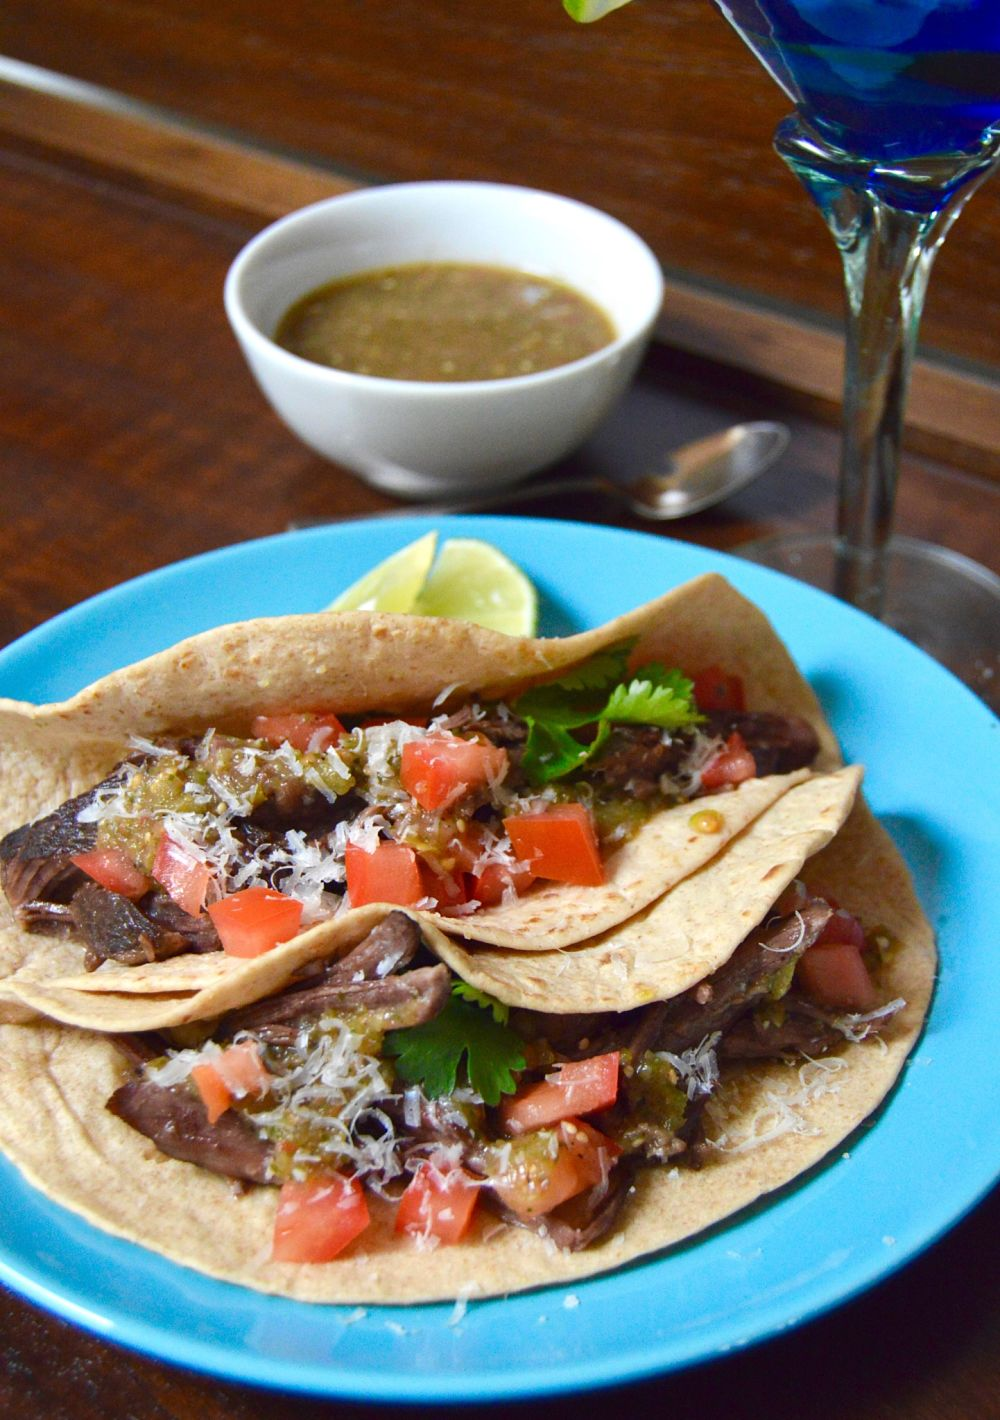 Simple Short Rib tacos with homemade tomatillo salsa out of the leftovers from the day before in less than 30 minutes! Easy recipe that's fast and delicious! A complete win/win! www.westviamidwest.com